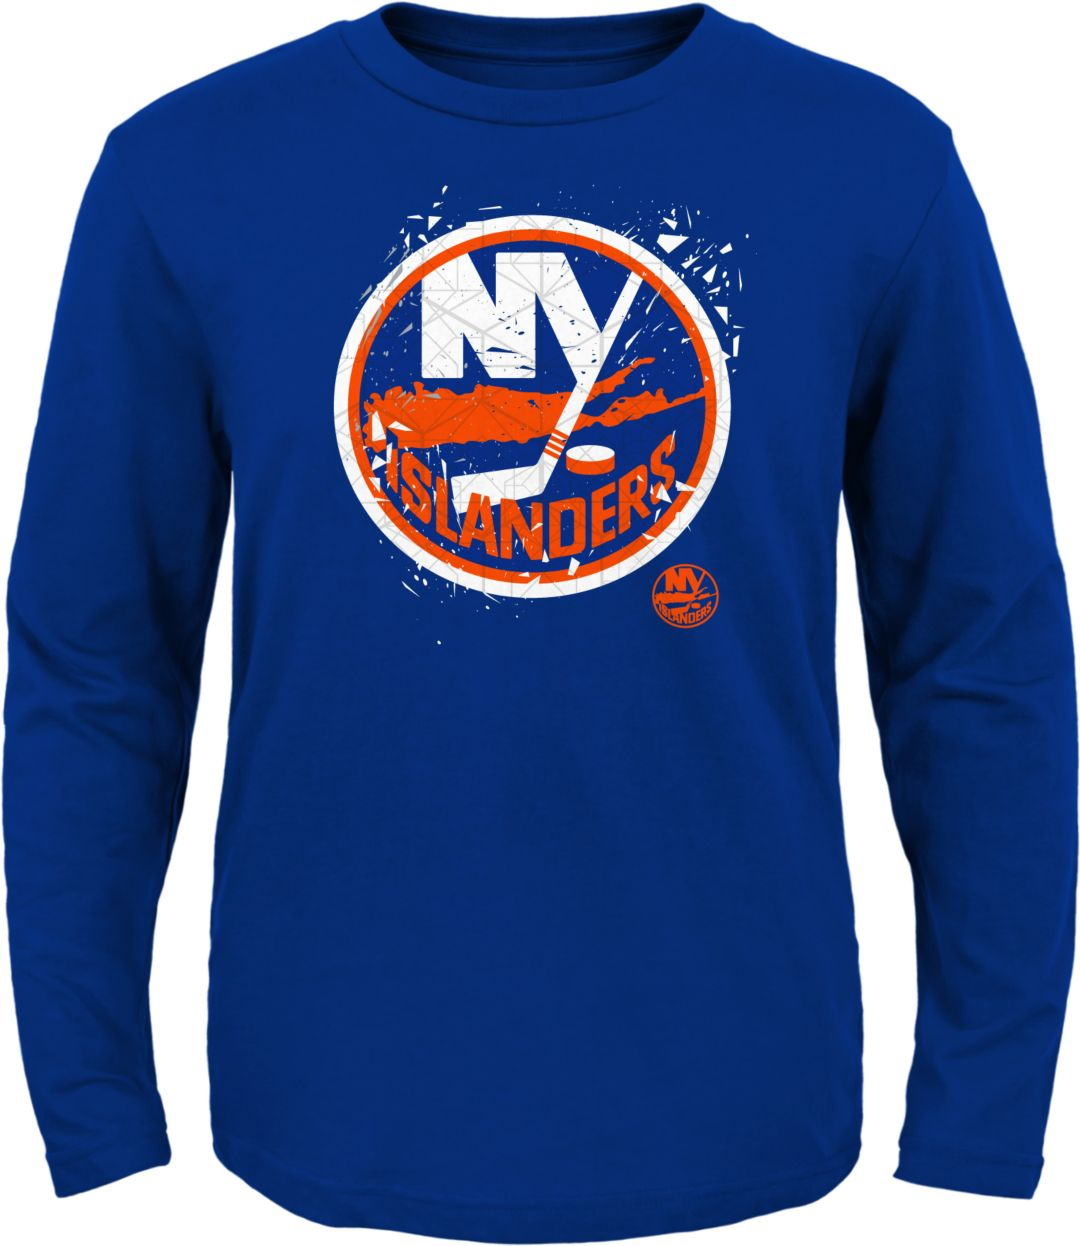 sale retailer faea2 9f279 NHL Youth New York Islanders Deconstructed Royal Long Sleeve Shirt